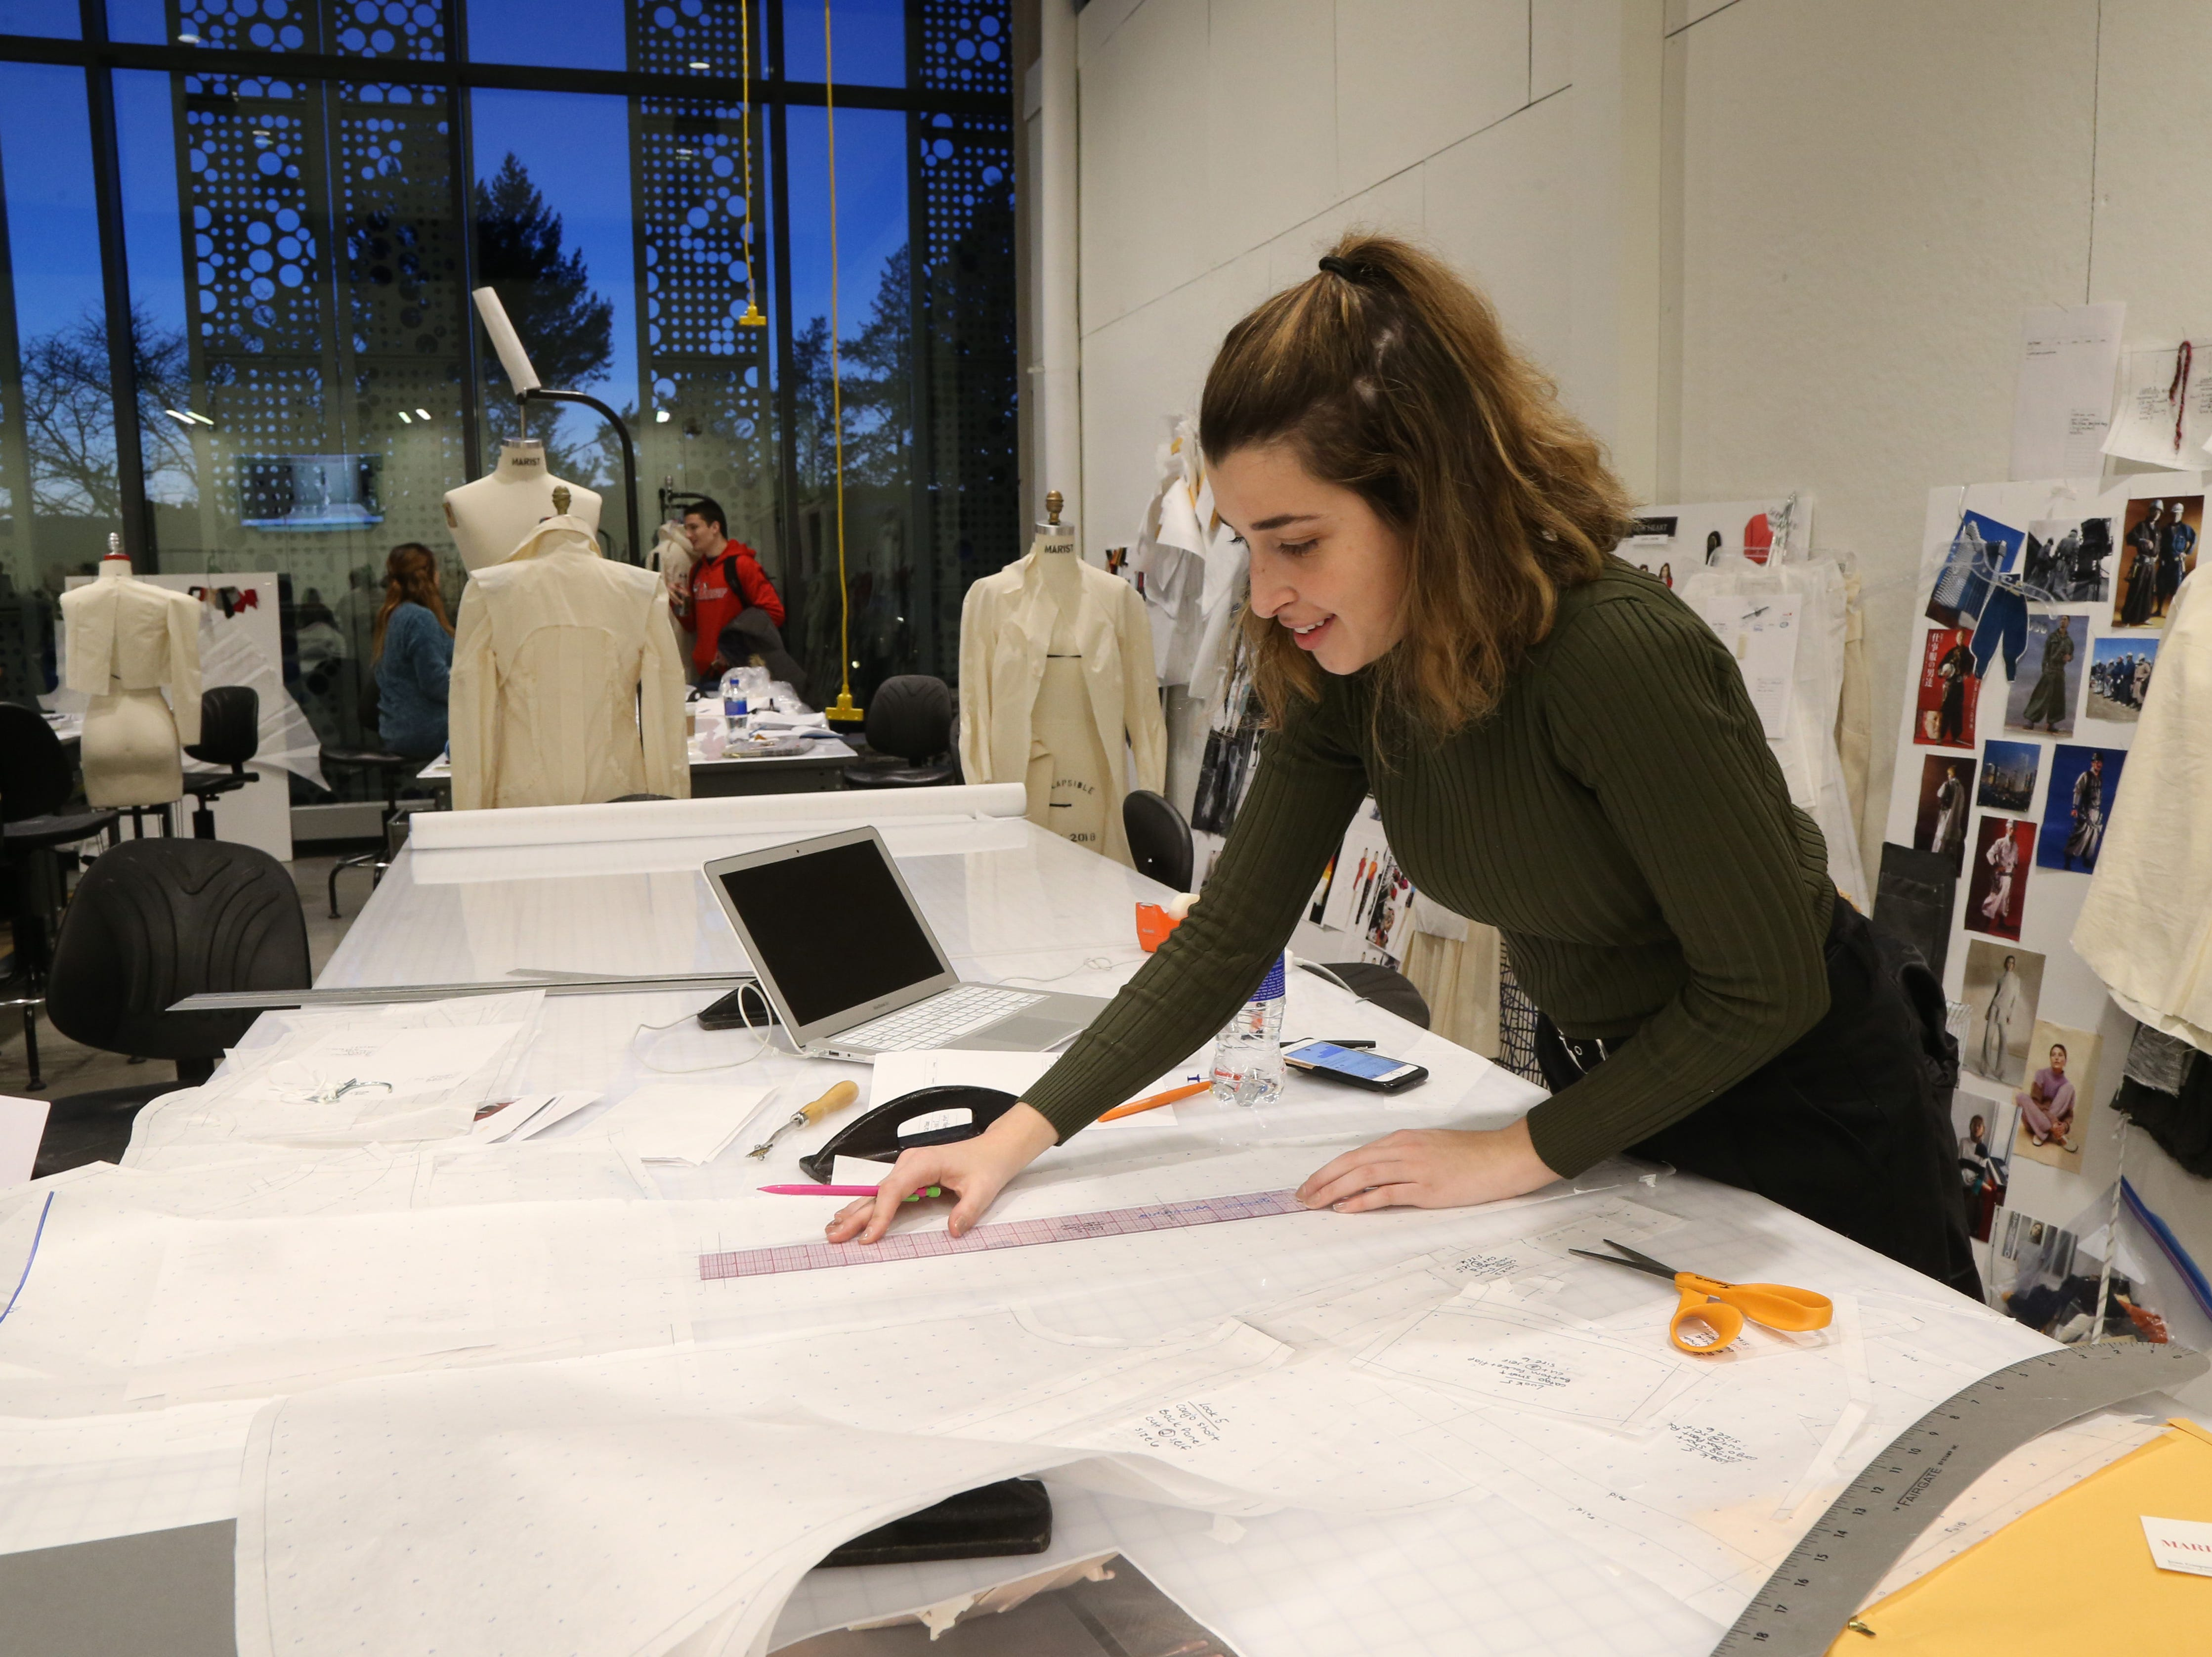 Marist fashion student JJoanna Musacchhia of Dix Hills works on a sewing pattern in one of the fashion design studios at Marist College's Steel Plant Studios in Poughkeepsie on February 1, 2019.